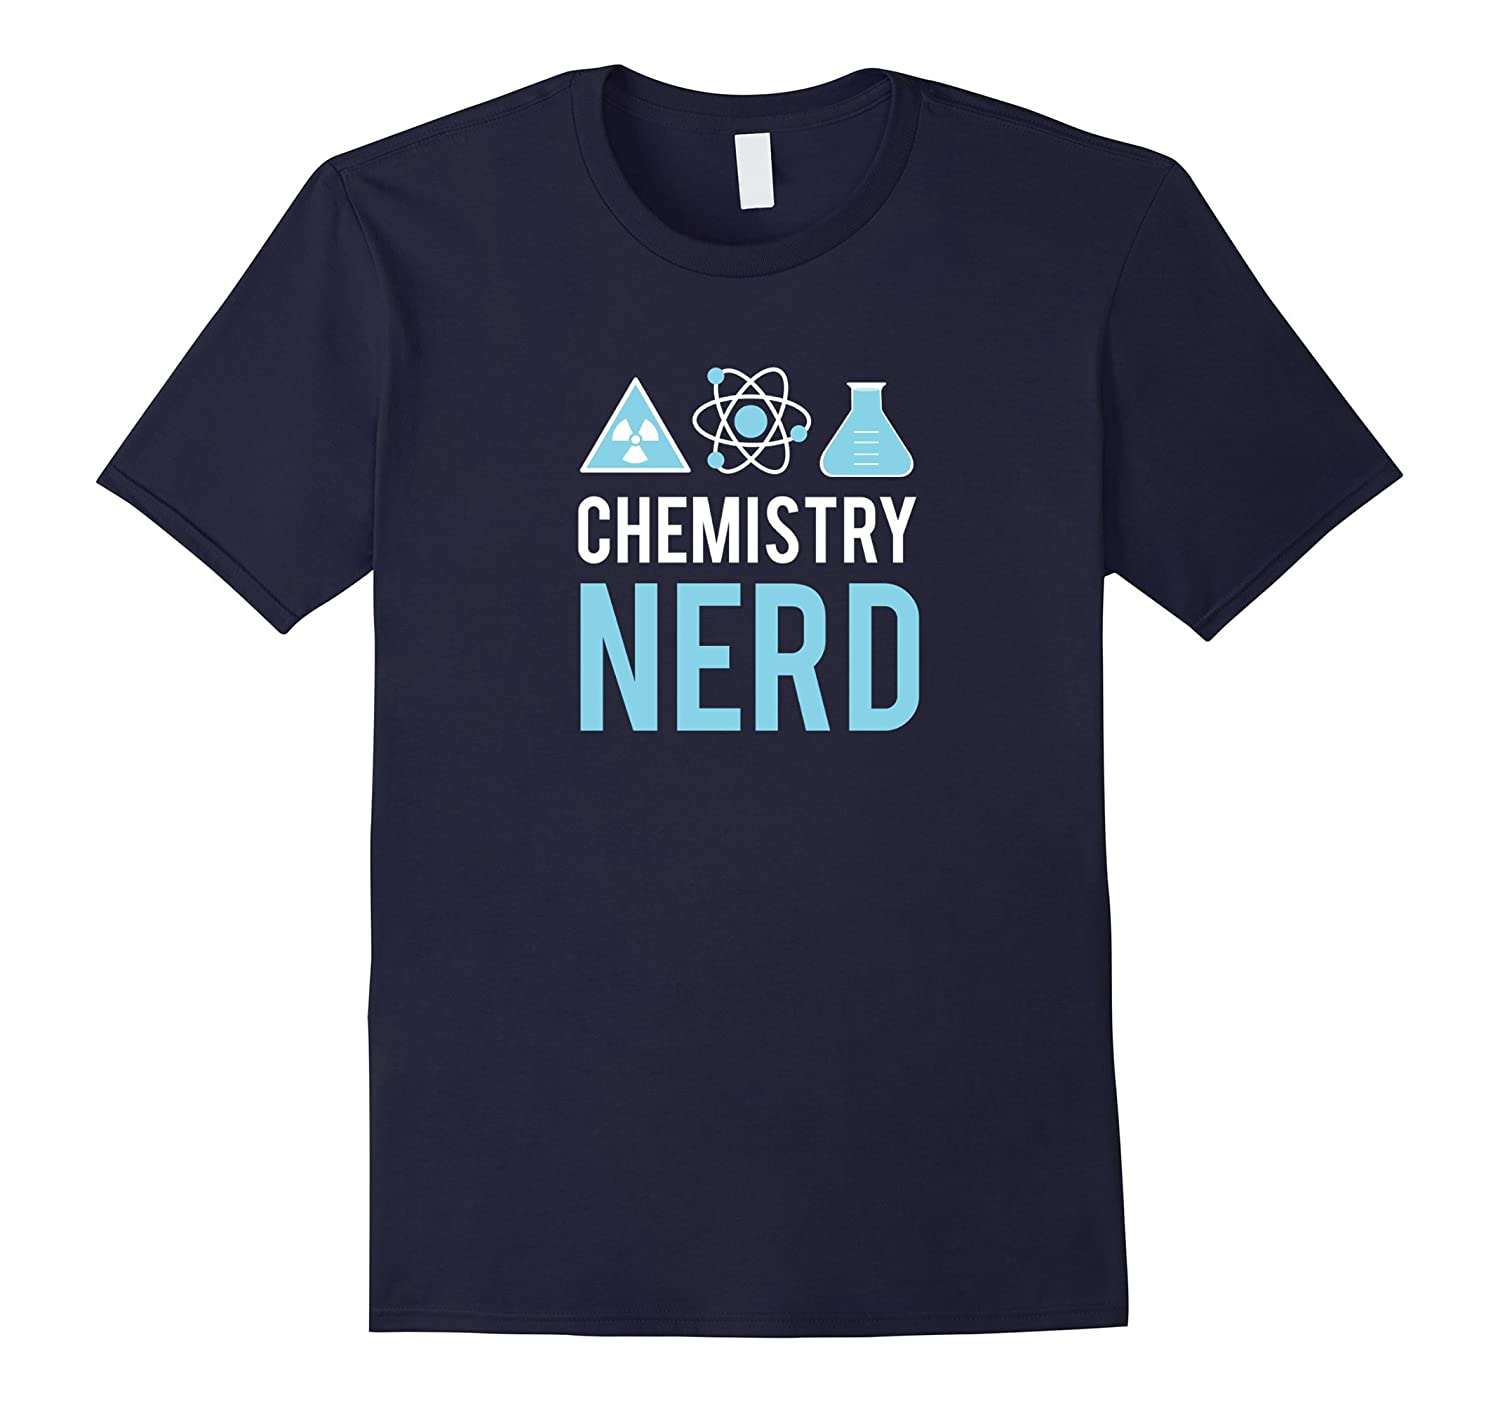 Chemistry Nerd - Funny Science March T-shirt for Chemists-TD